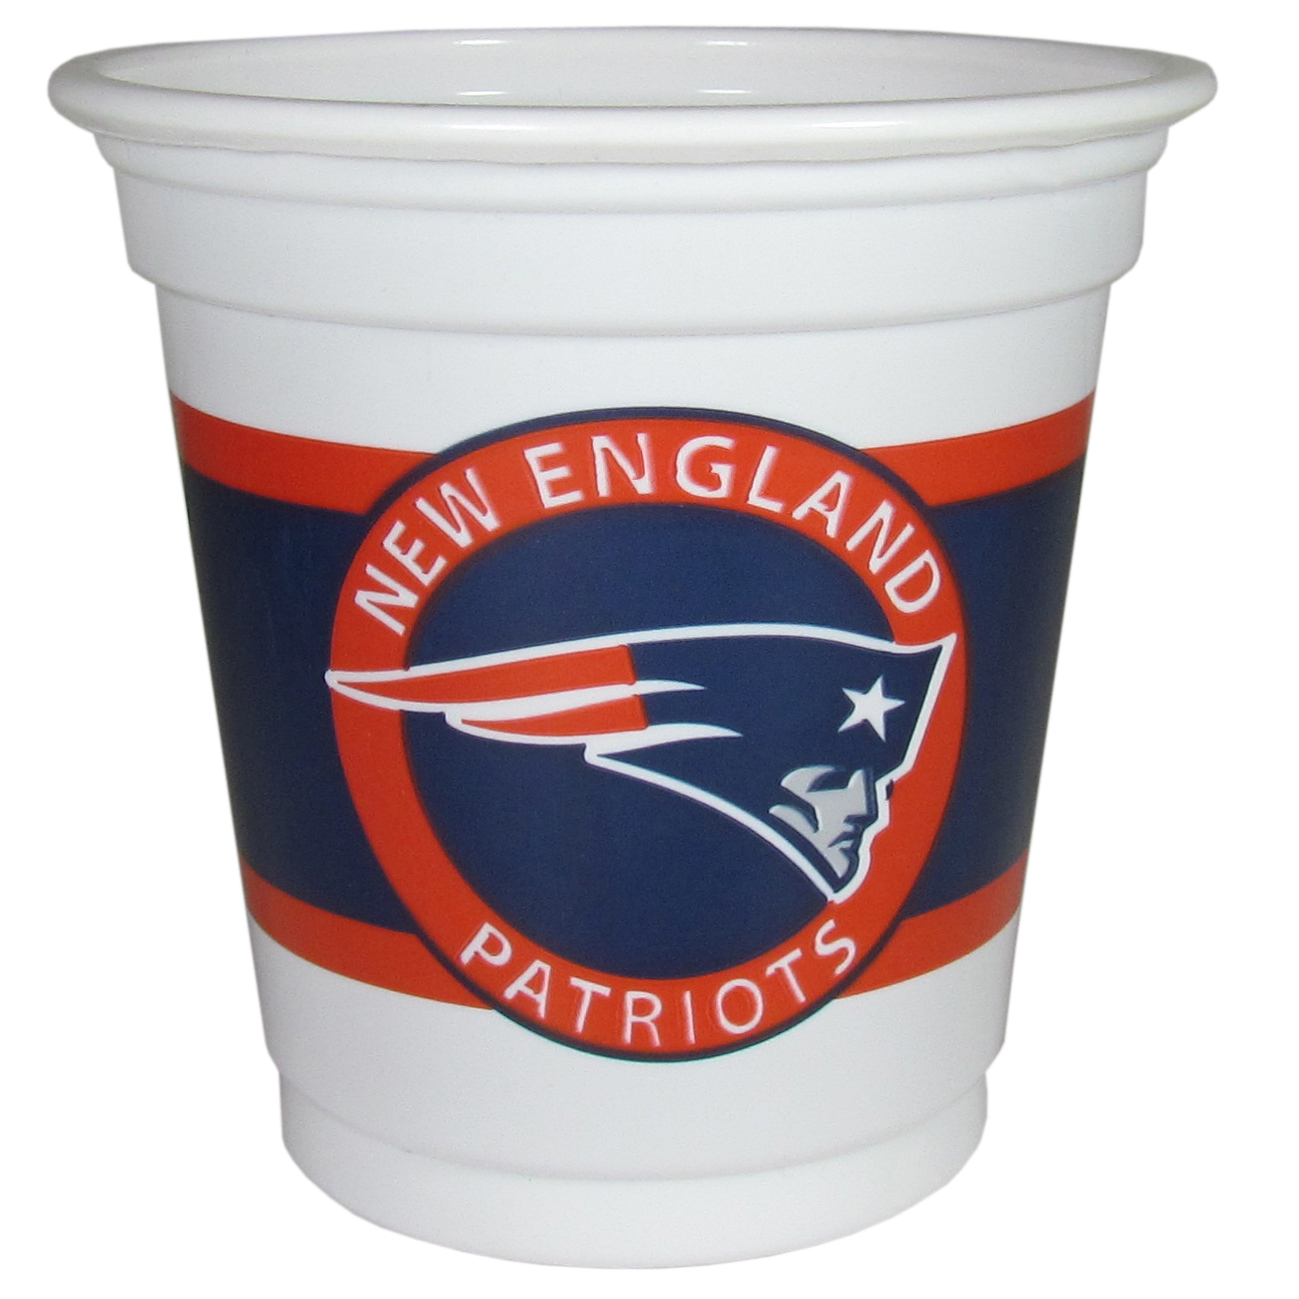 New England Patriots 18 Game Day Mini Cups - No better way to show your off your team pride on game day than these New England Patriots game day mini cups. The 3 ounce disposable glasses are the perfect addition to your game day party or tailgating BBQ. The cups come in a sleeve of 18 to make sure everyone is sporting true team spirit!